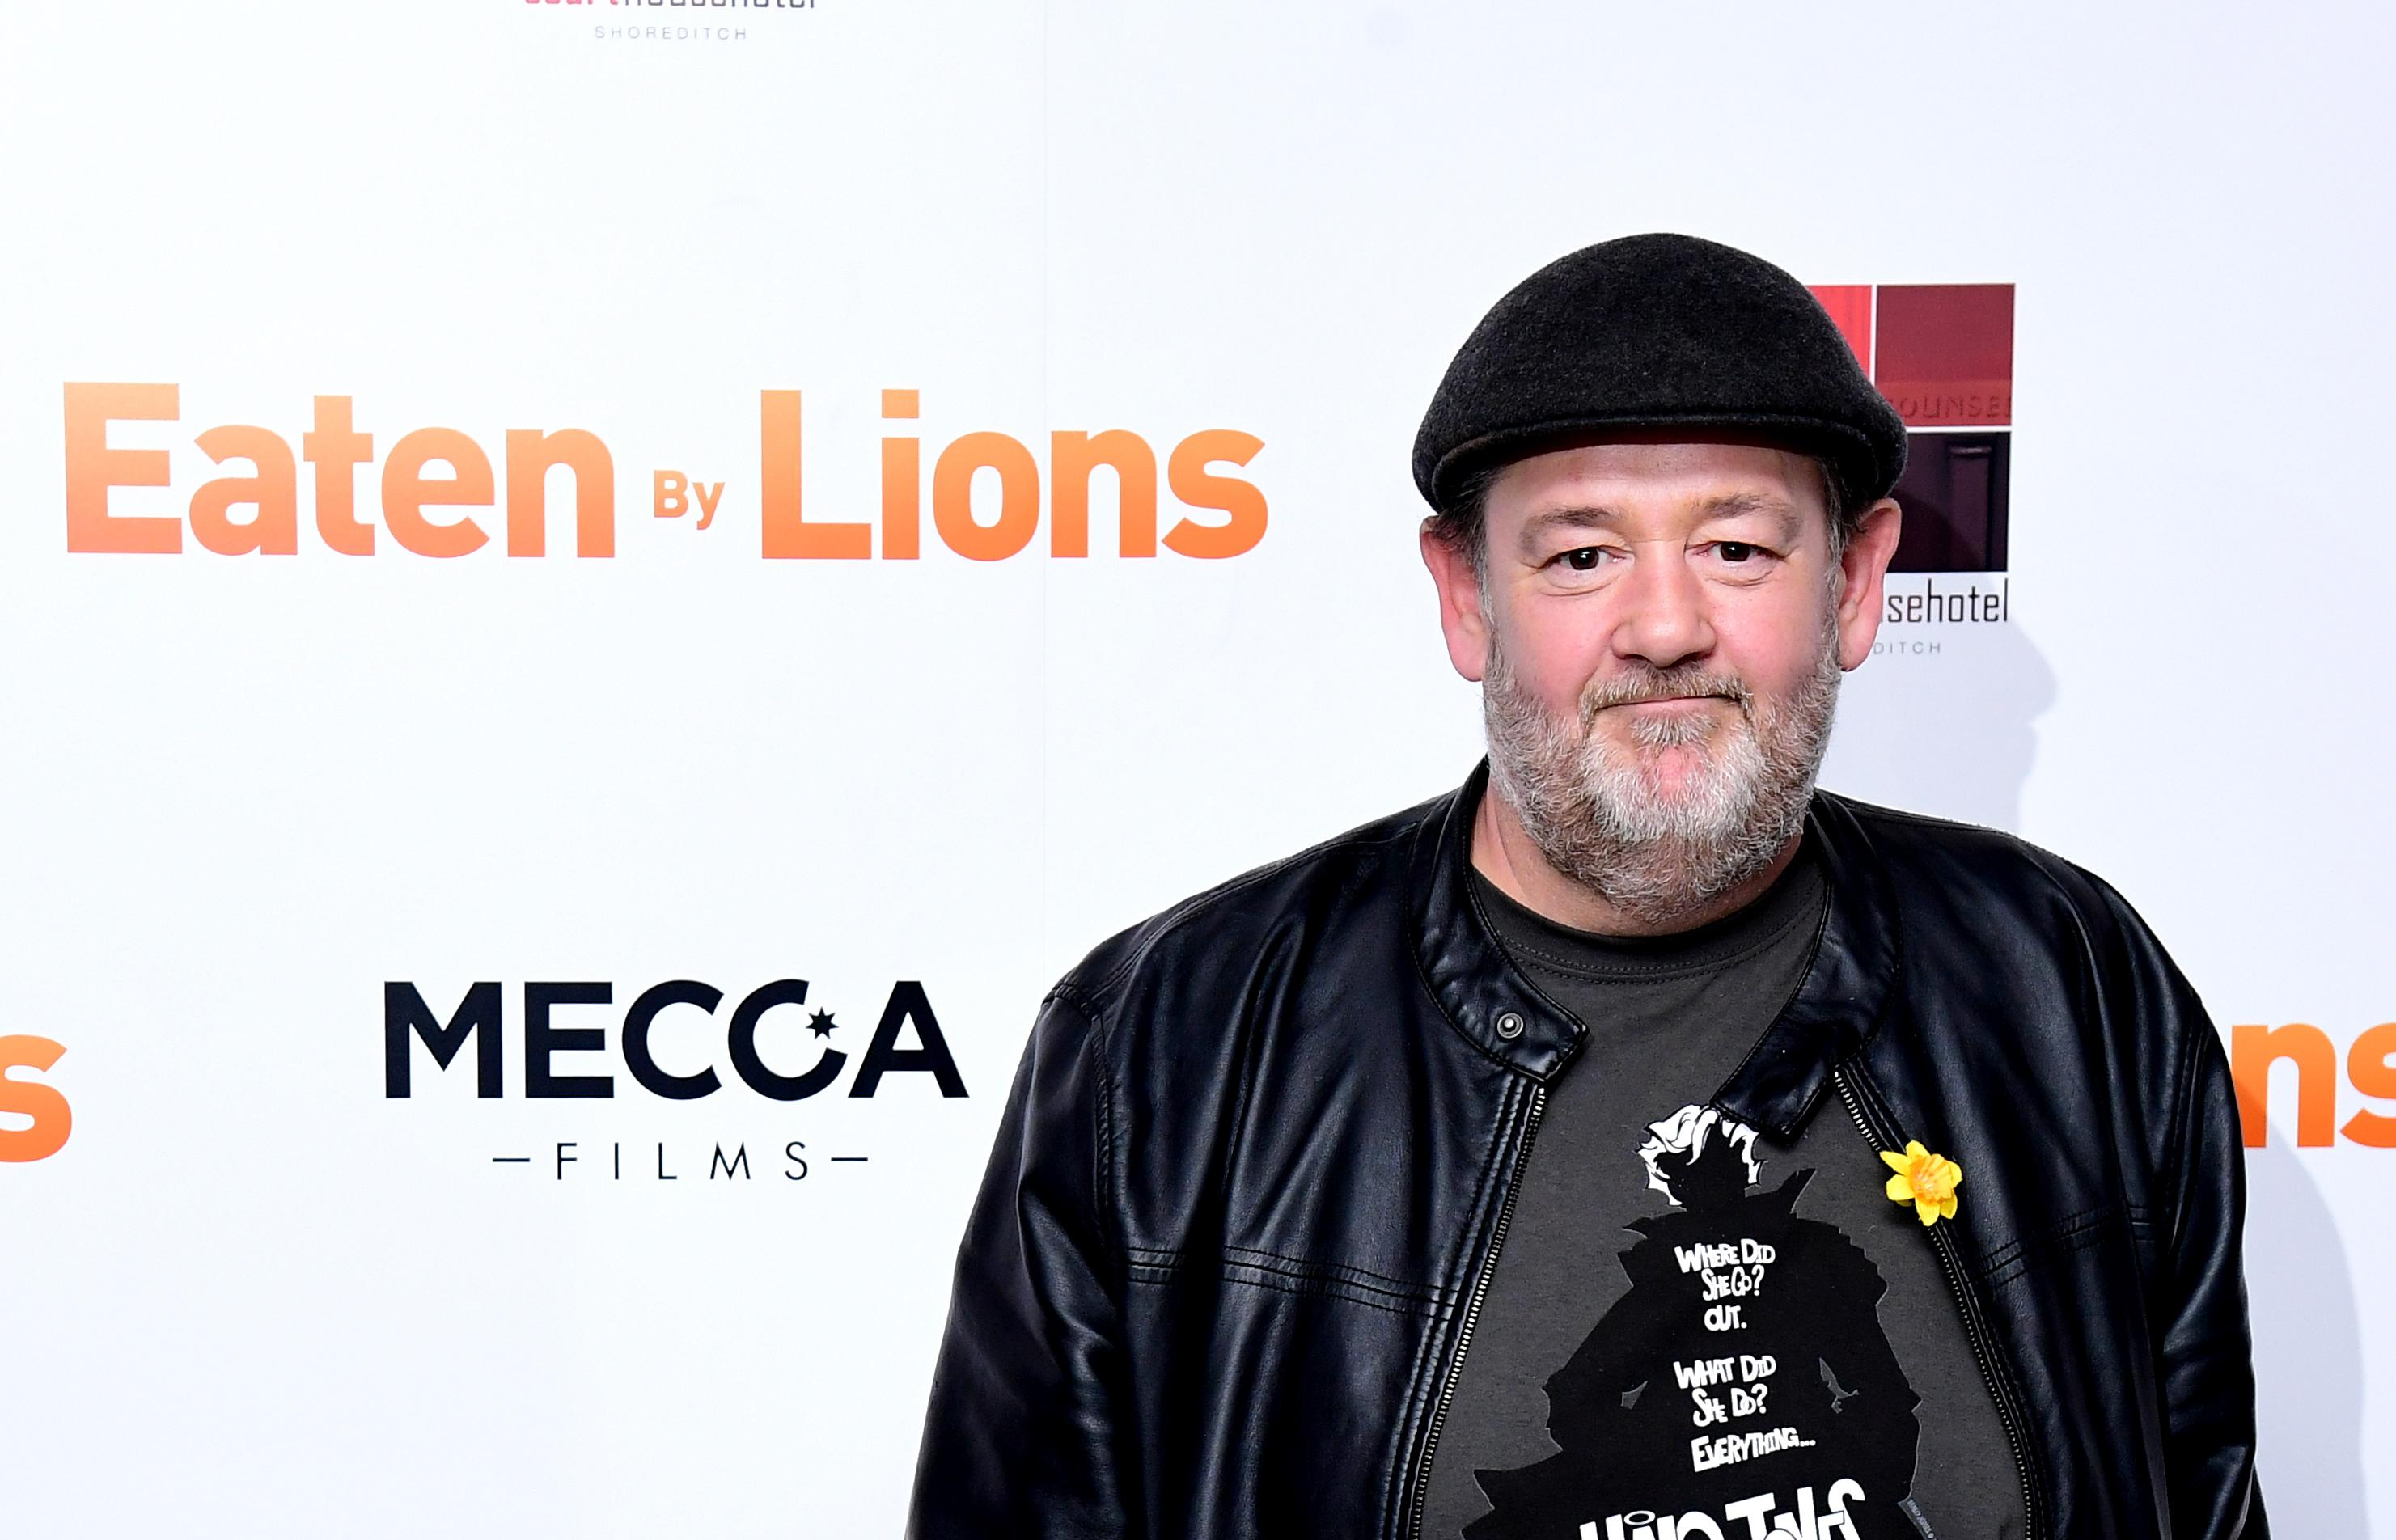 Johnny Vegas attending the Eaten by Lions Premiere held at The Courthouse Hotel in London.